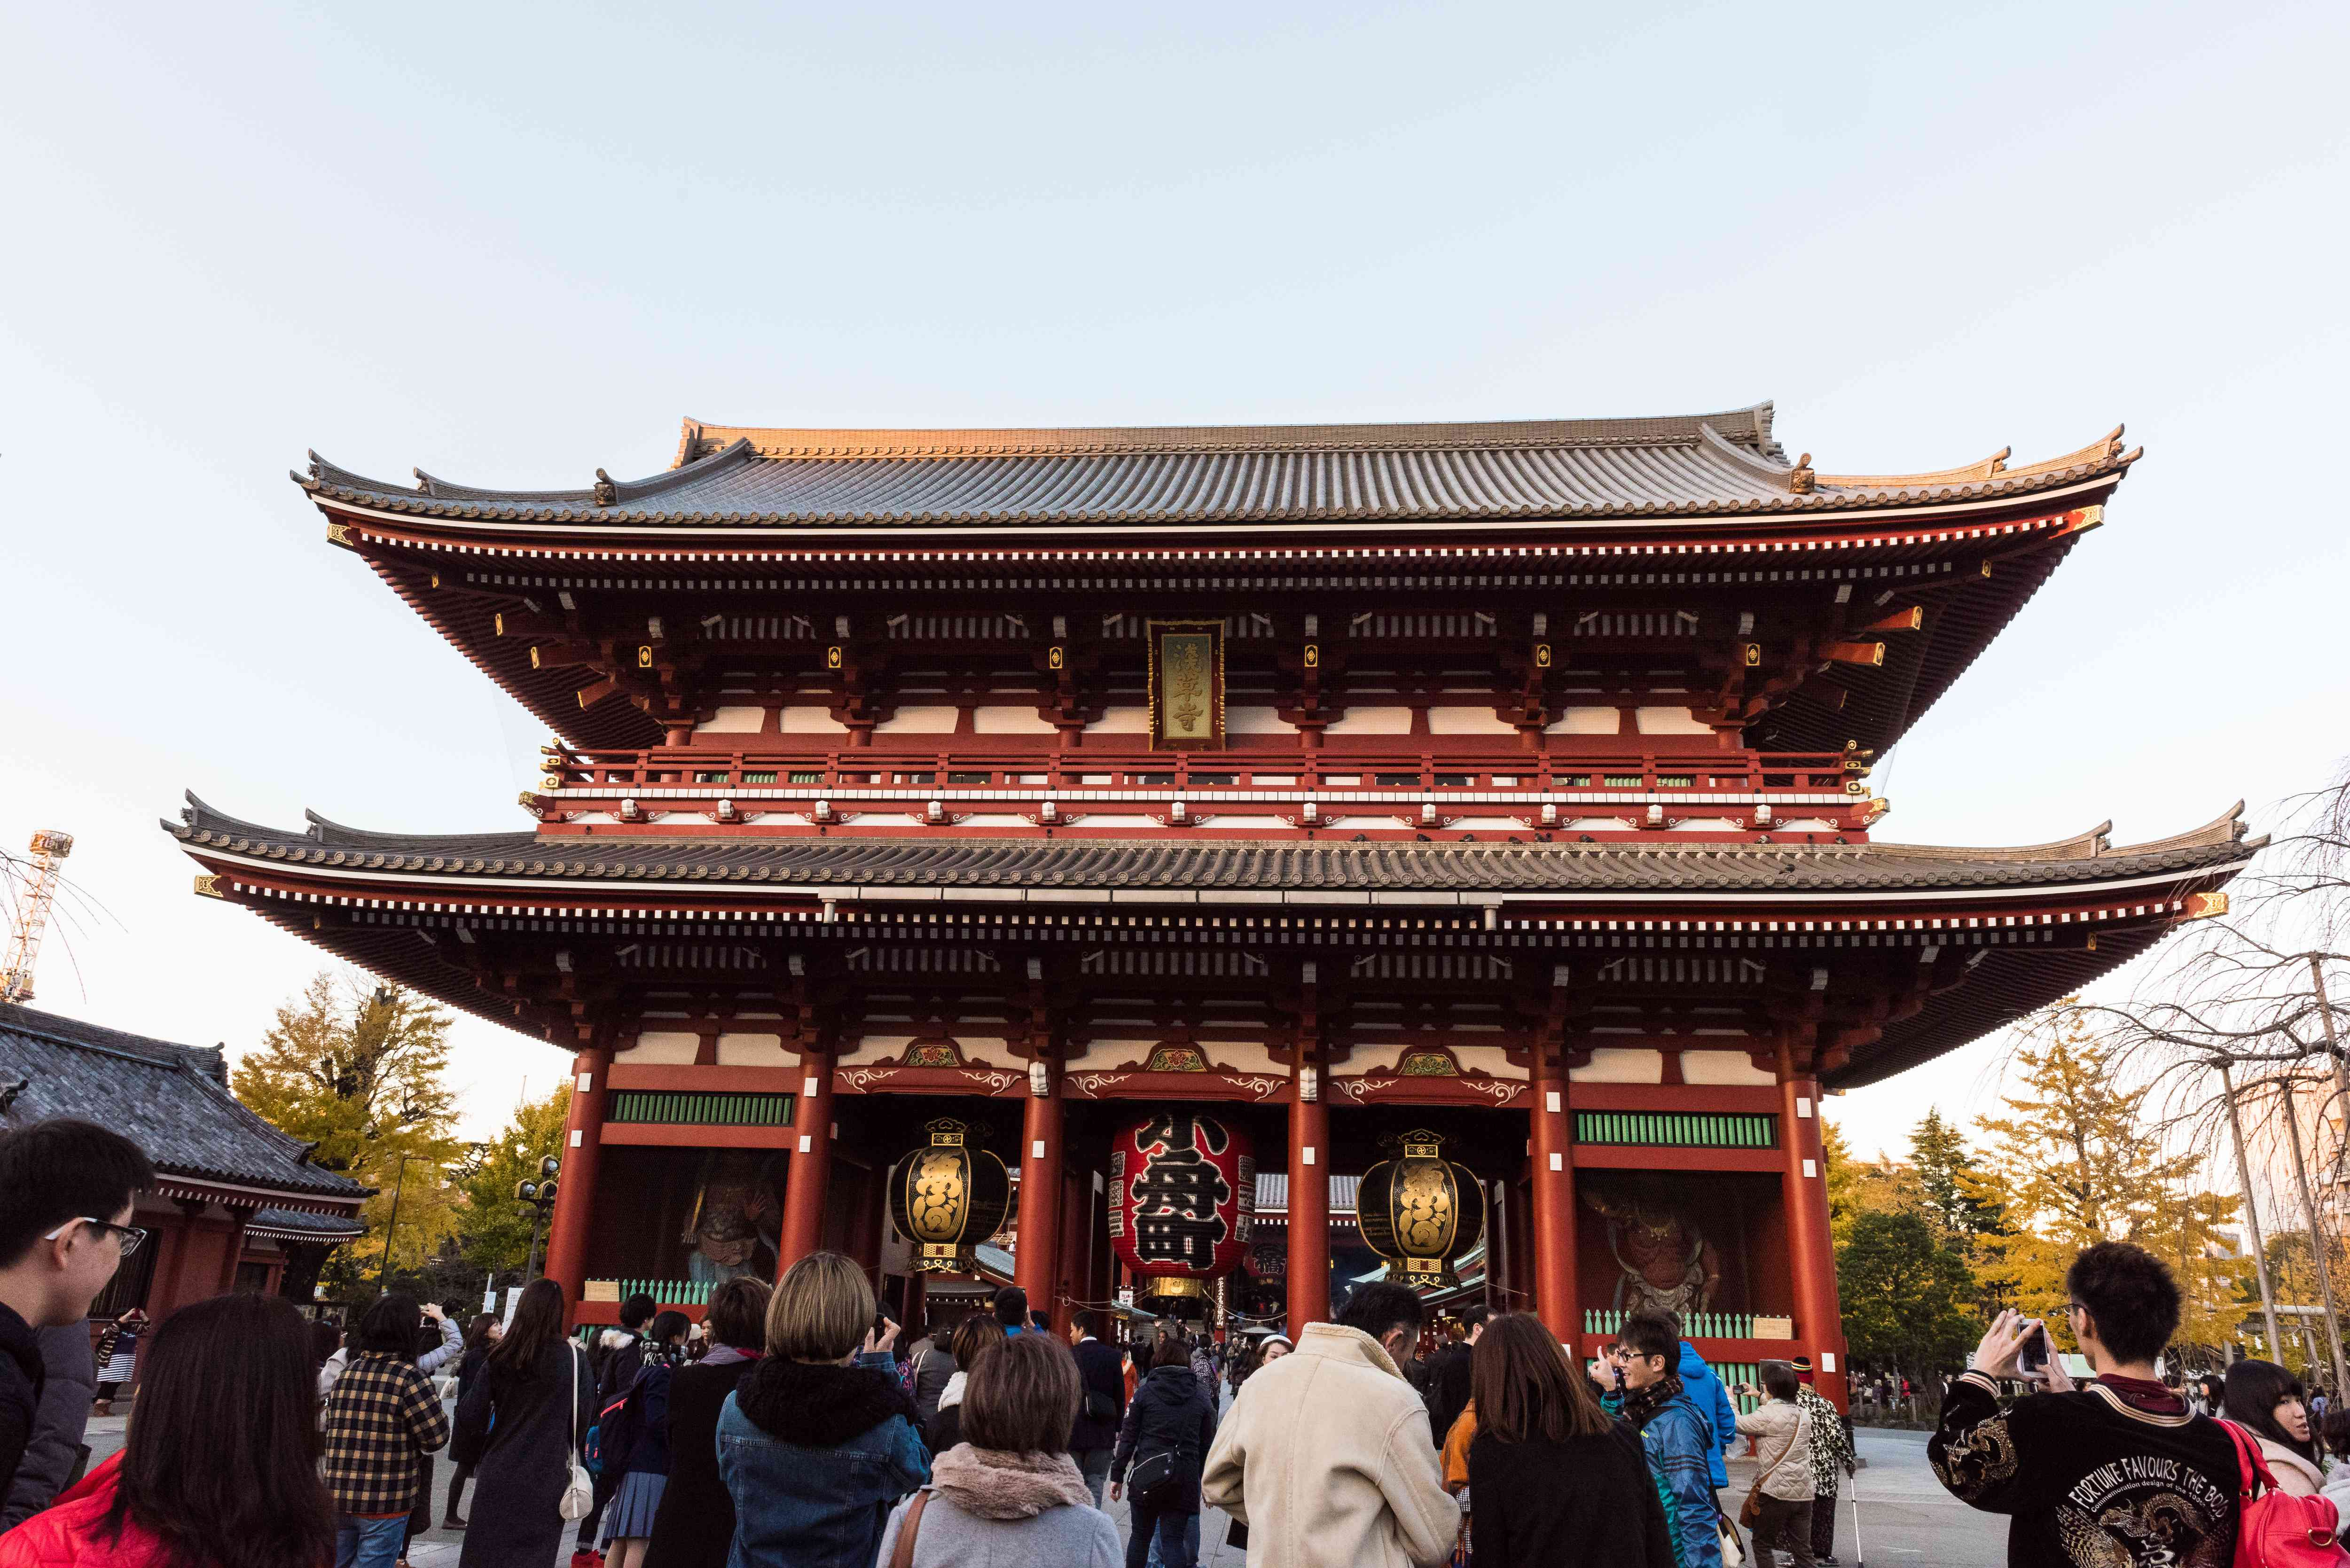 Senso-ji temple in tokyo with people taking photos of the entry gate